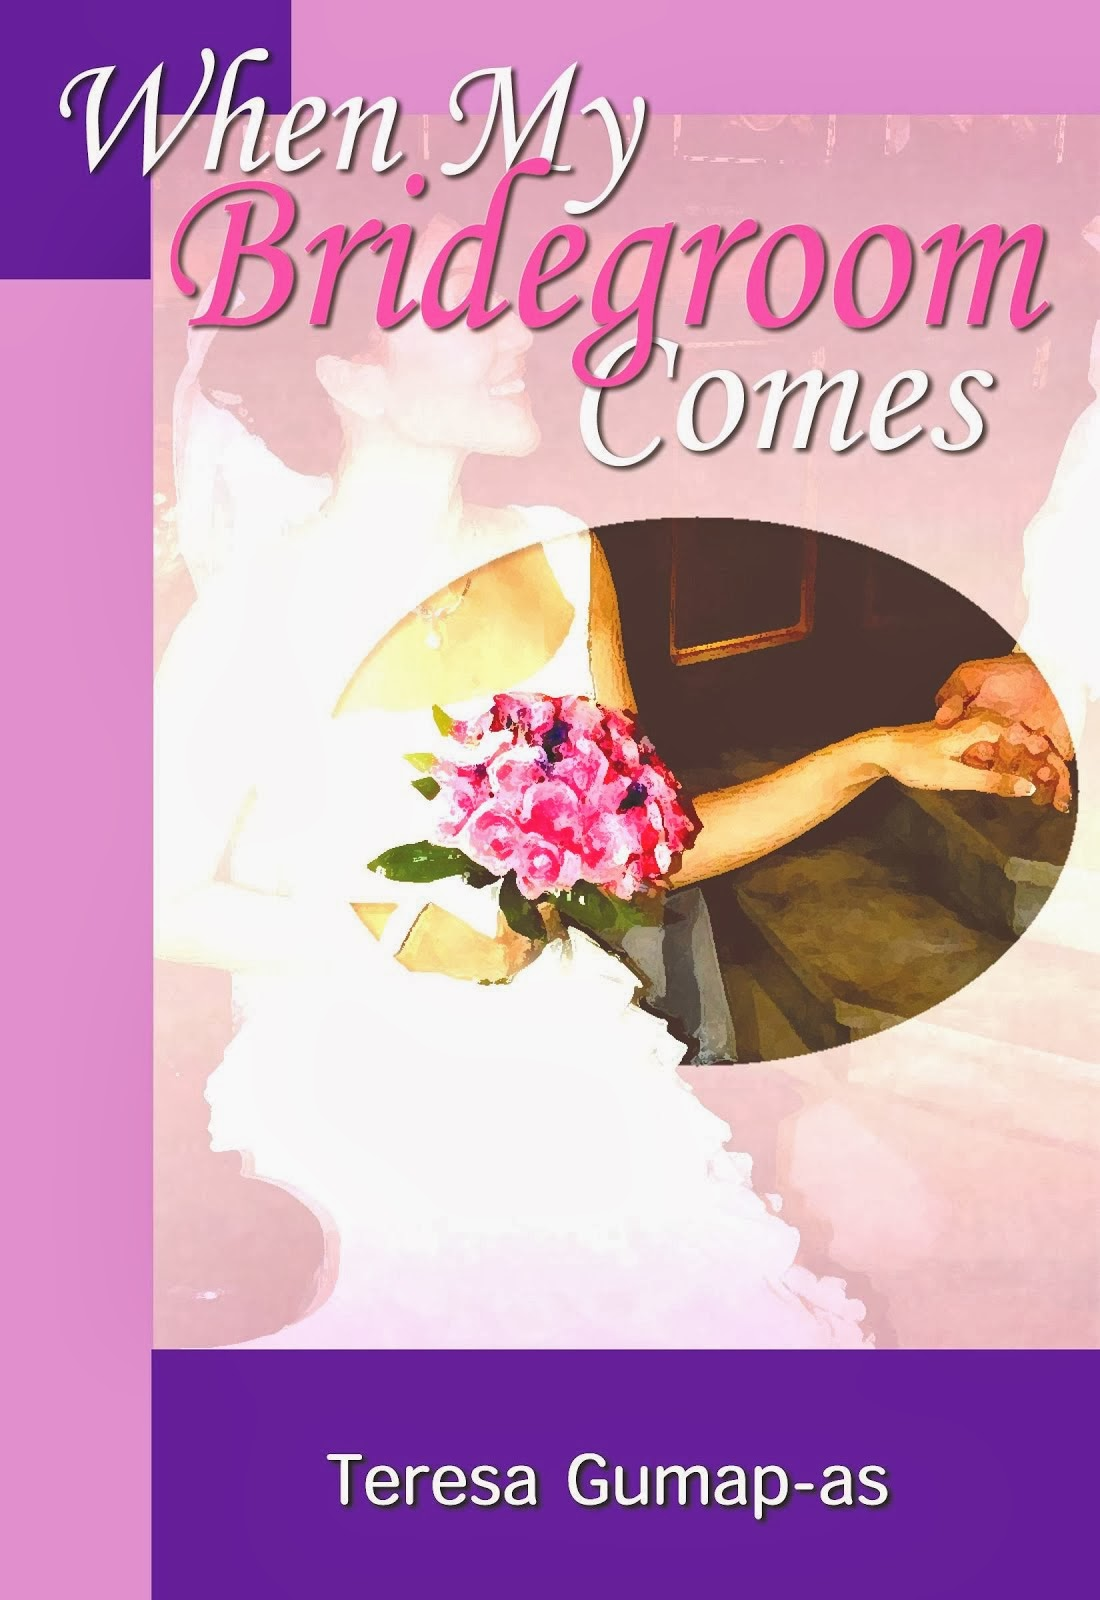 Mommy TG's Book for Single Ladies and Future Brides